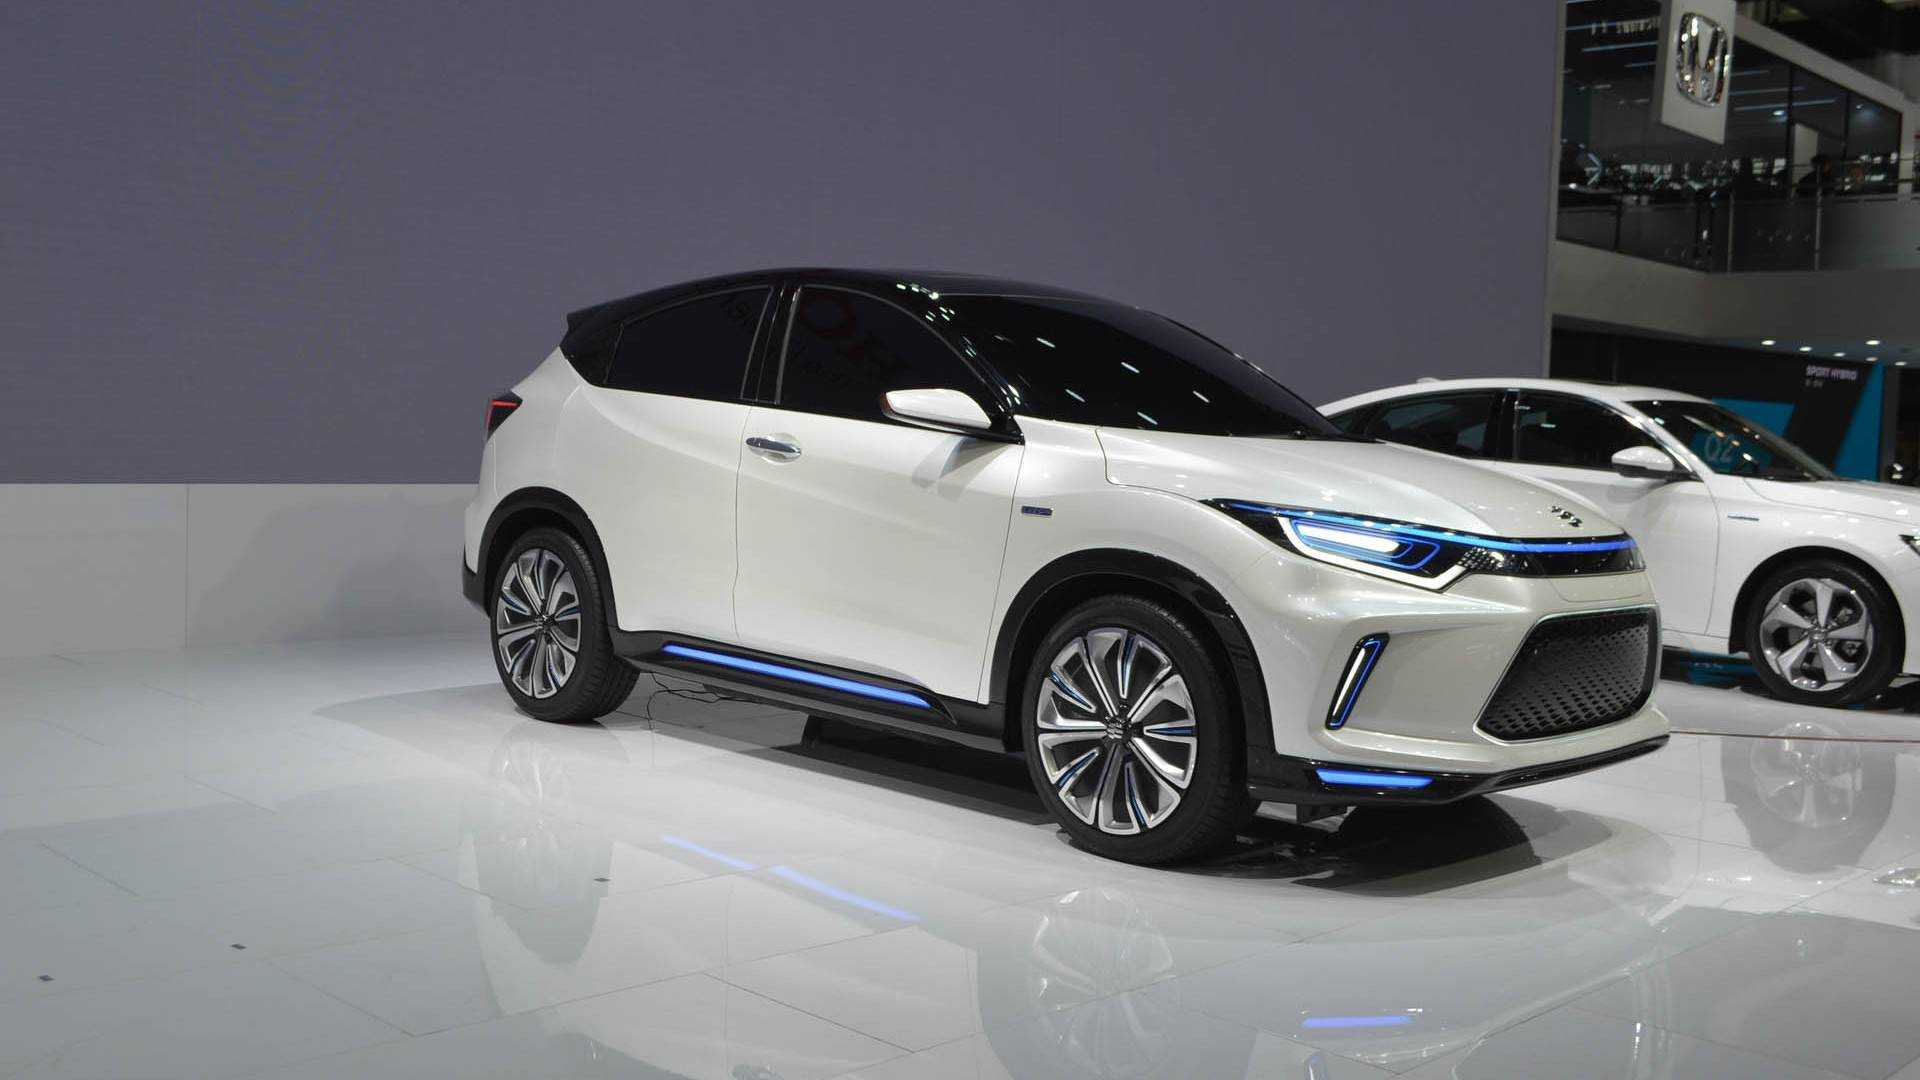 Honda Reveals Electric Cuv With 536 Kwh Battery Based On Hr V